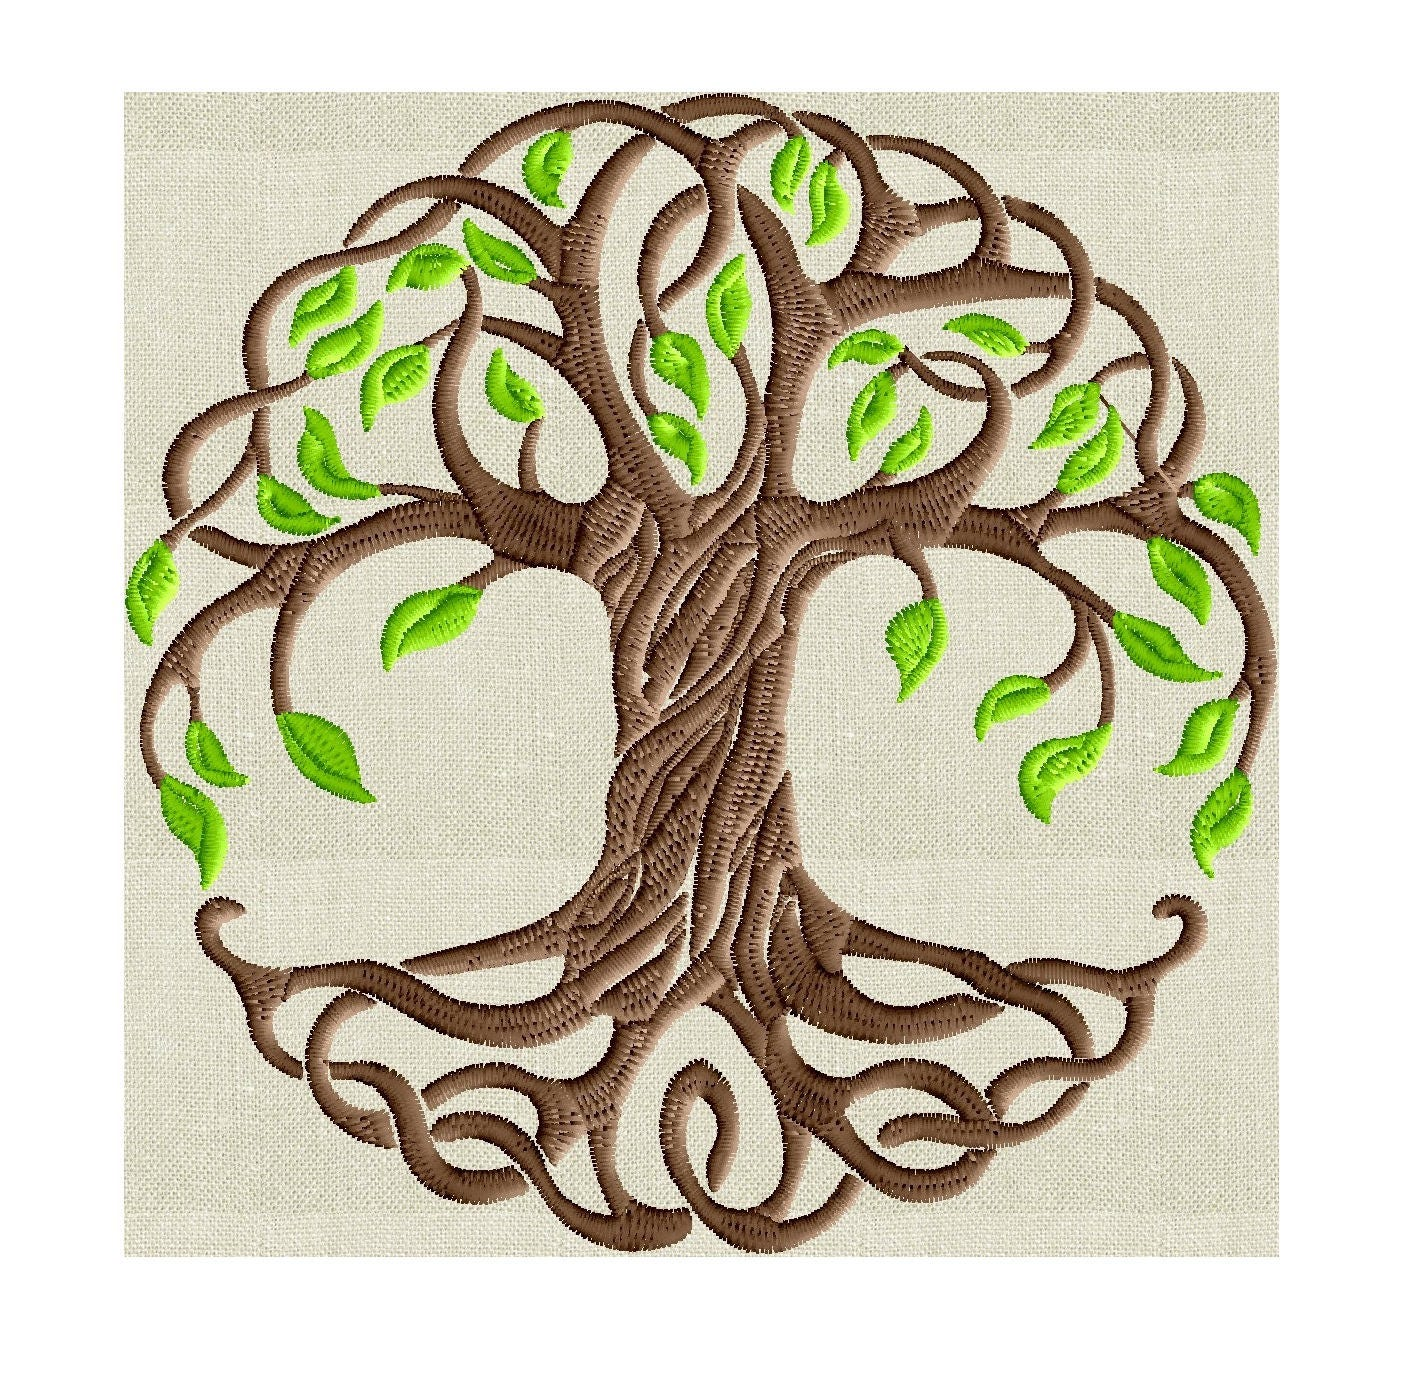 tree of life 2 color embroidery design -font not included- embroidery design file